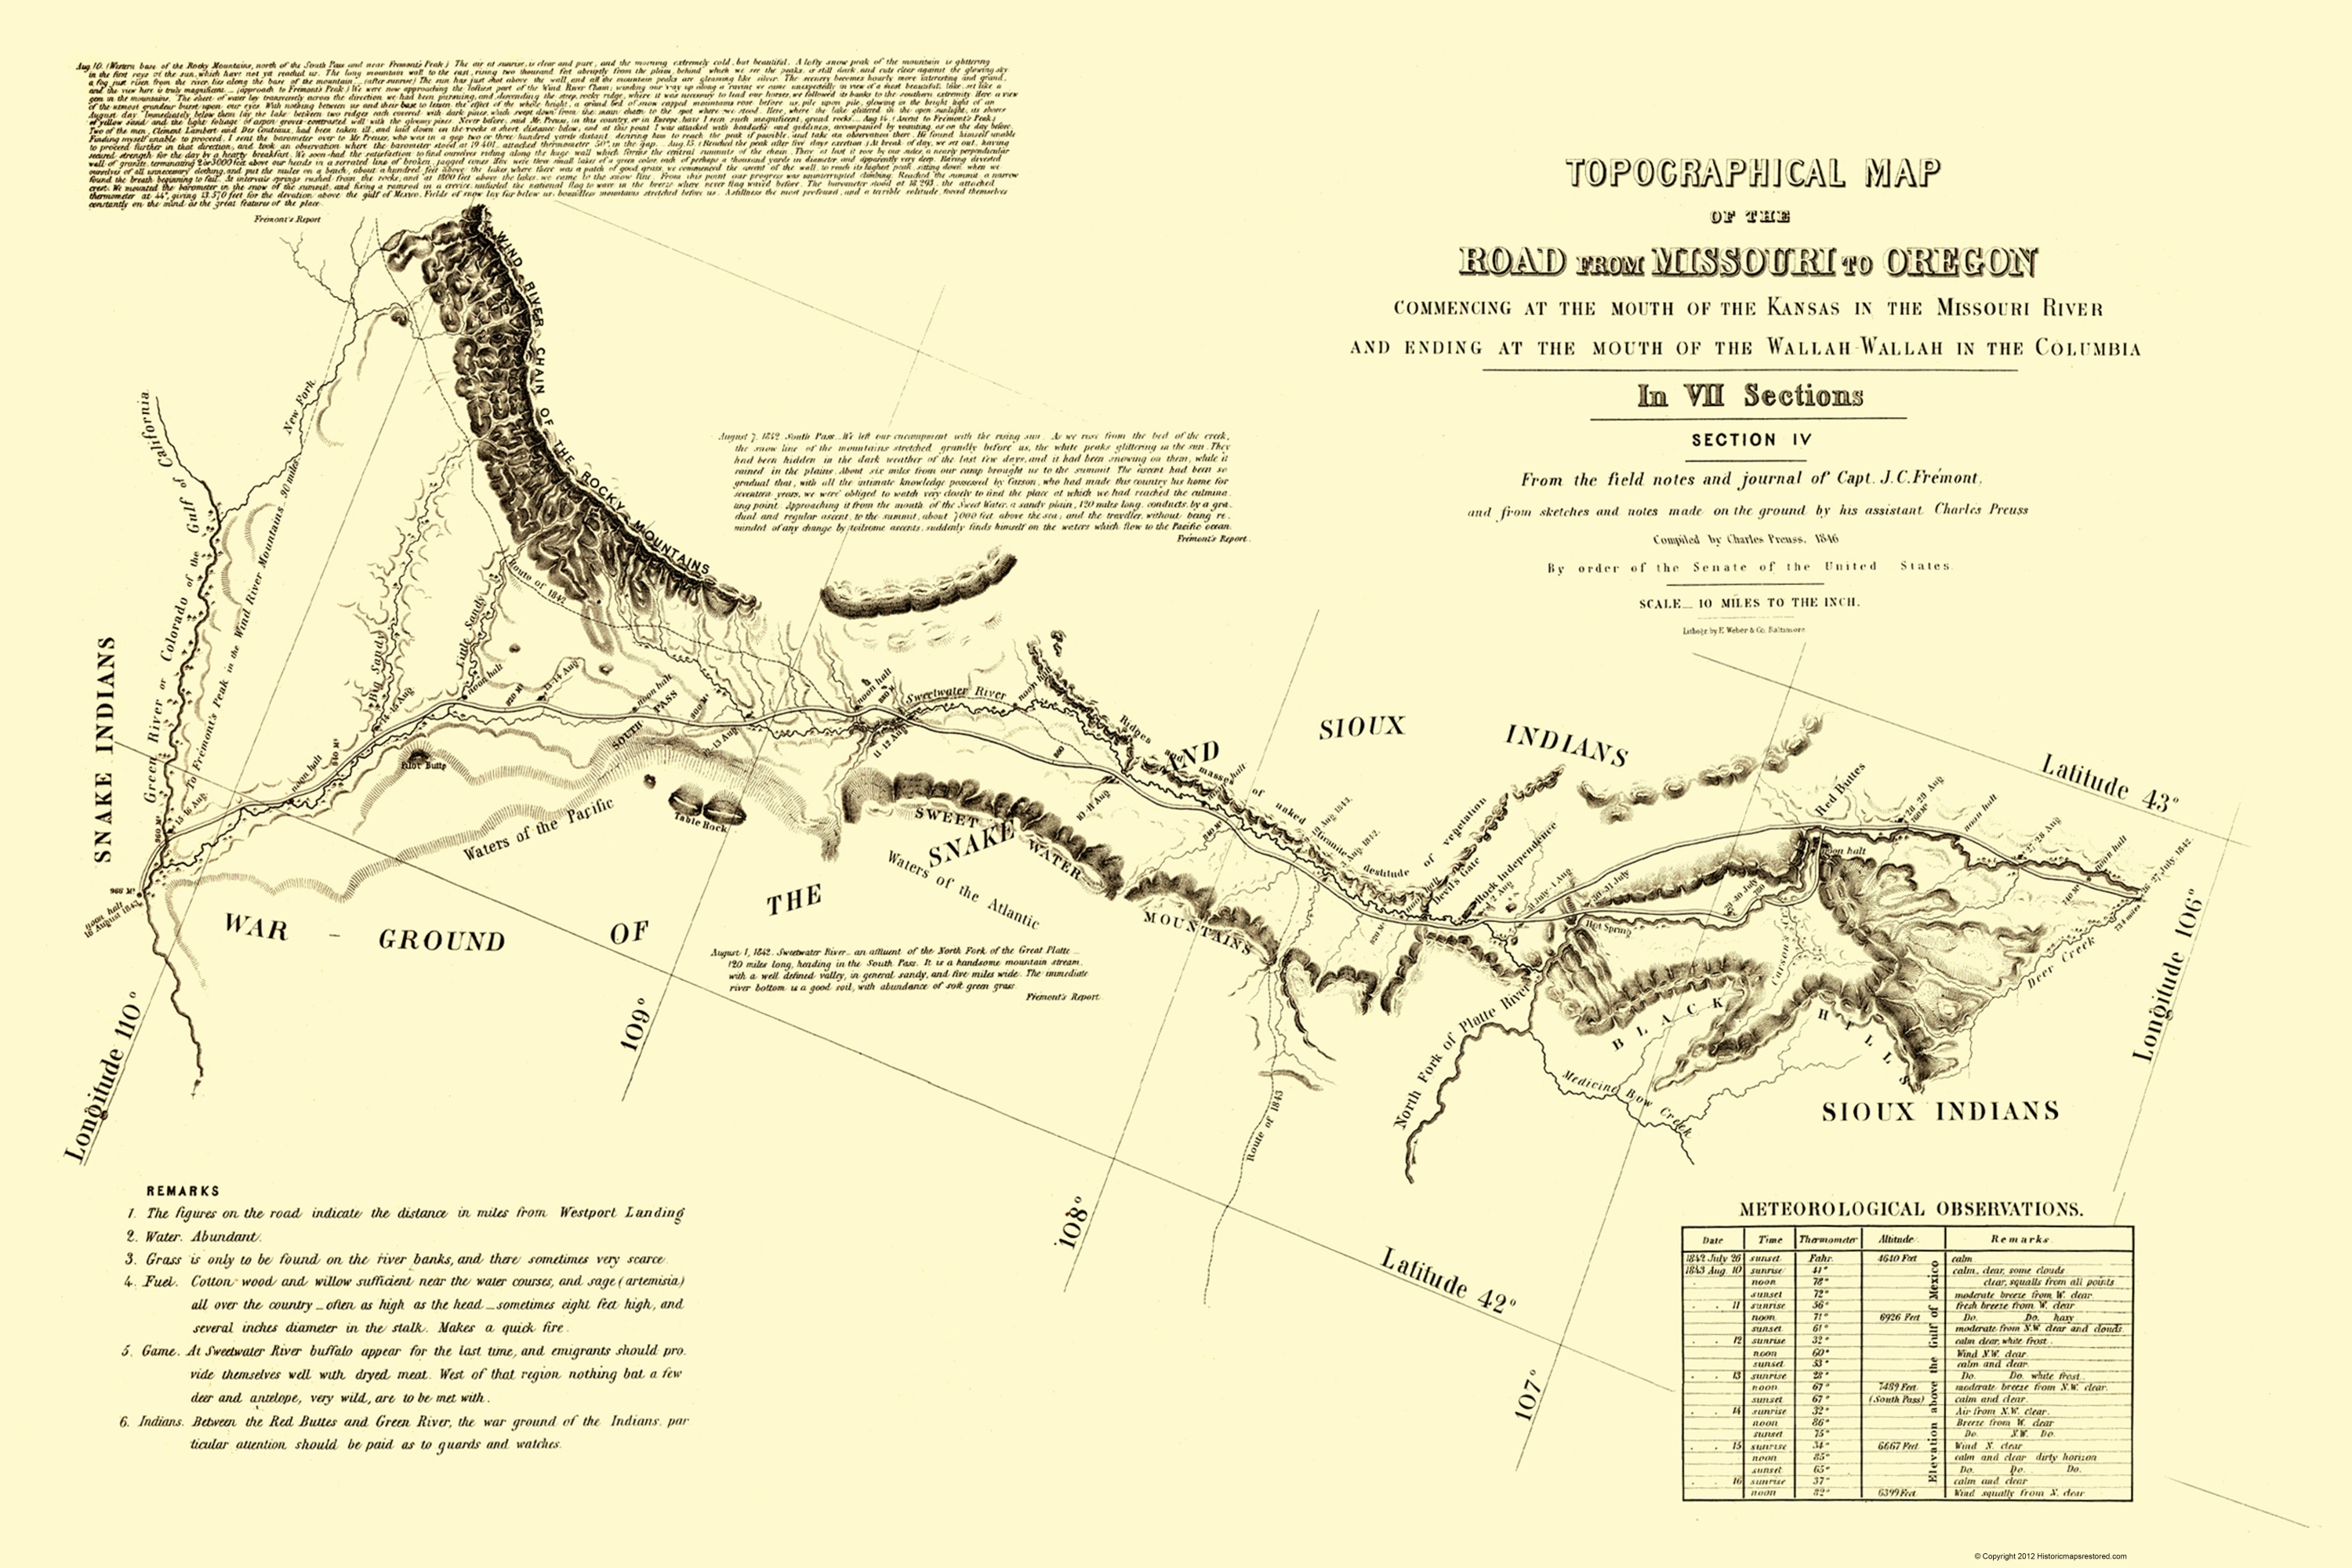 Old Topographical Map Print Oregon Trail Wyoming 4 of 7 Fremont